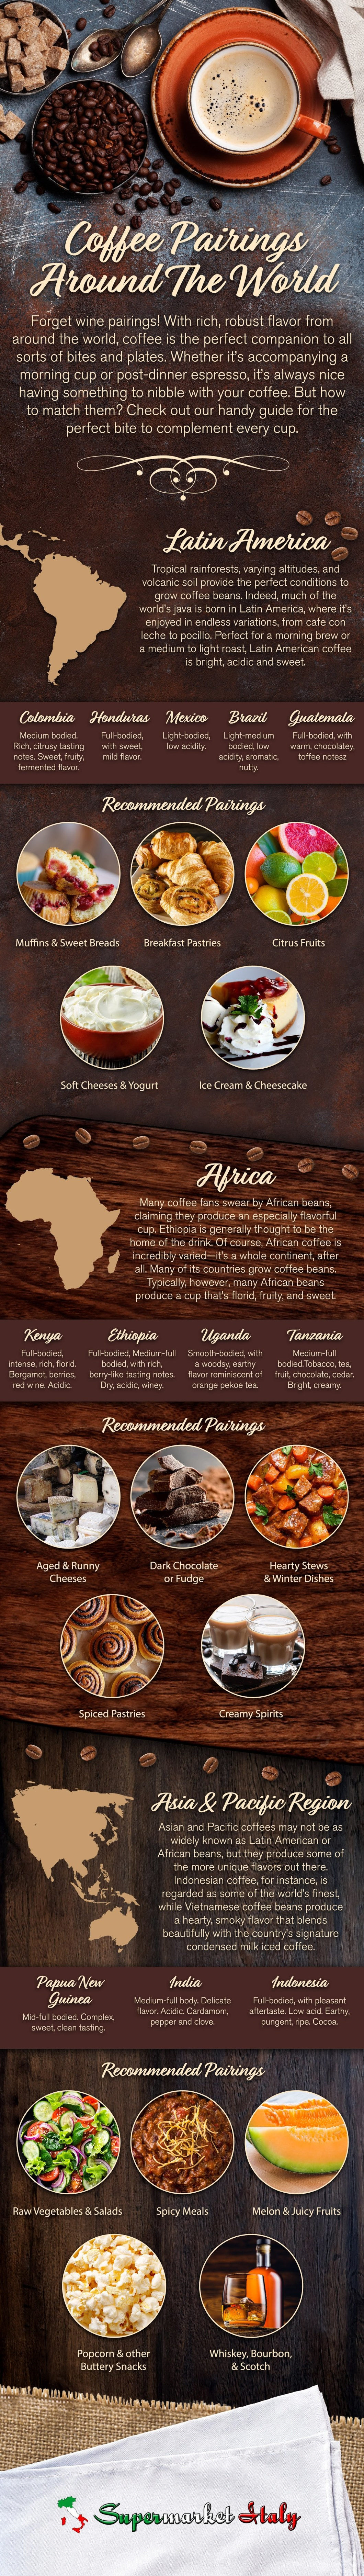 The Best Coffees and Their Made-for-Each-Other Pairings - Infographic